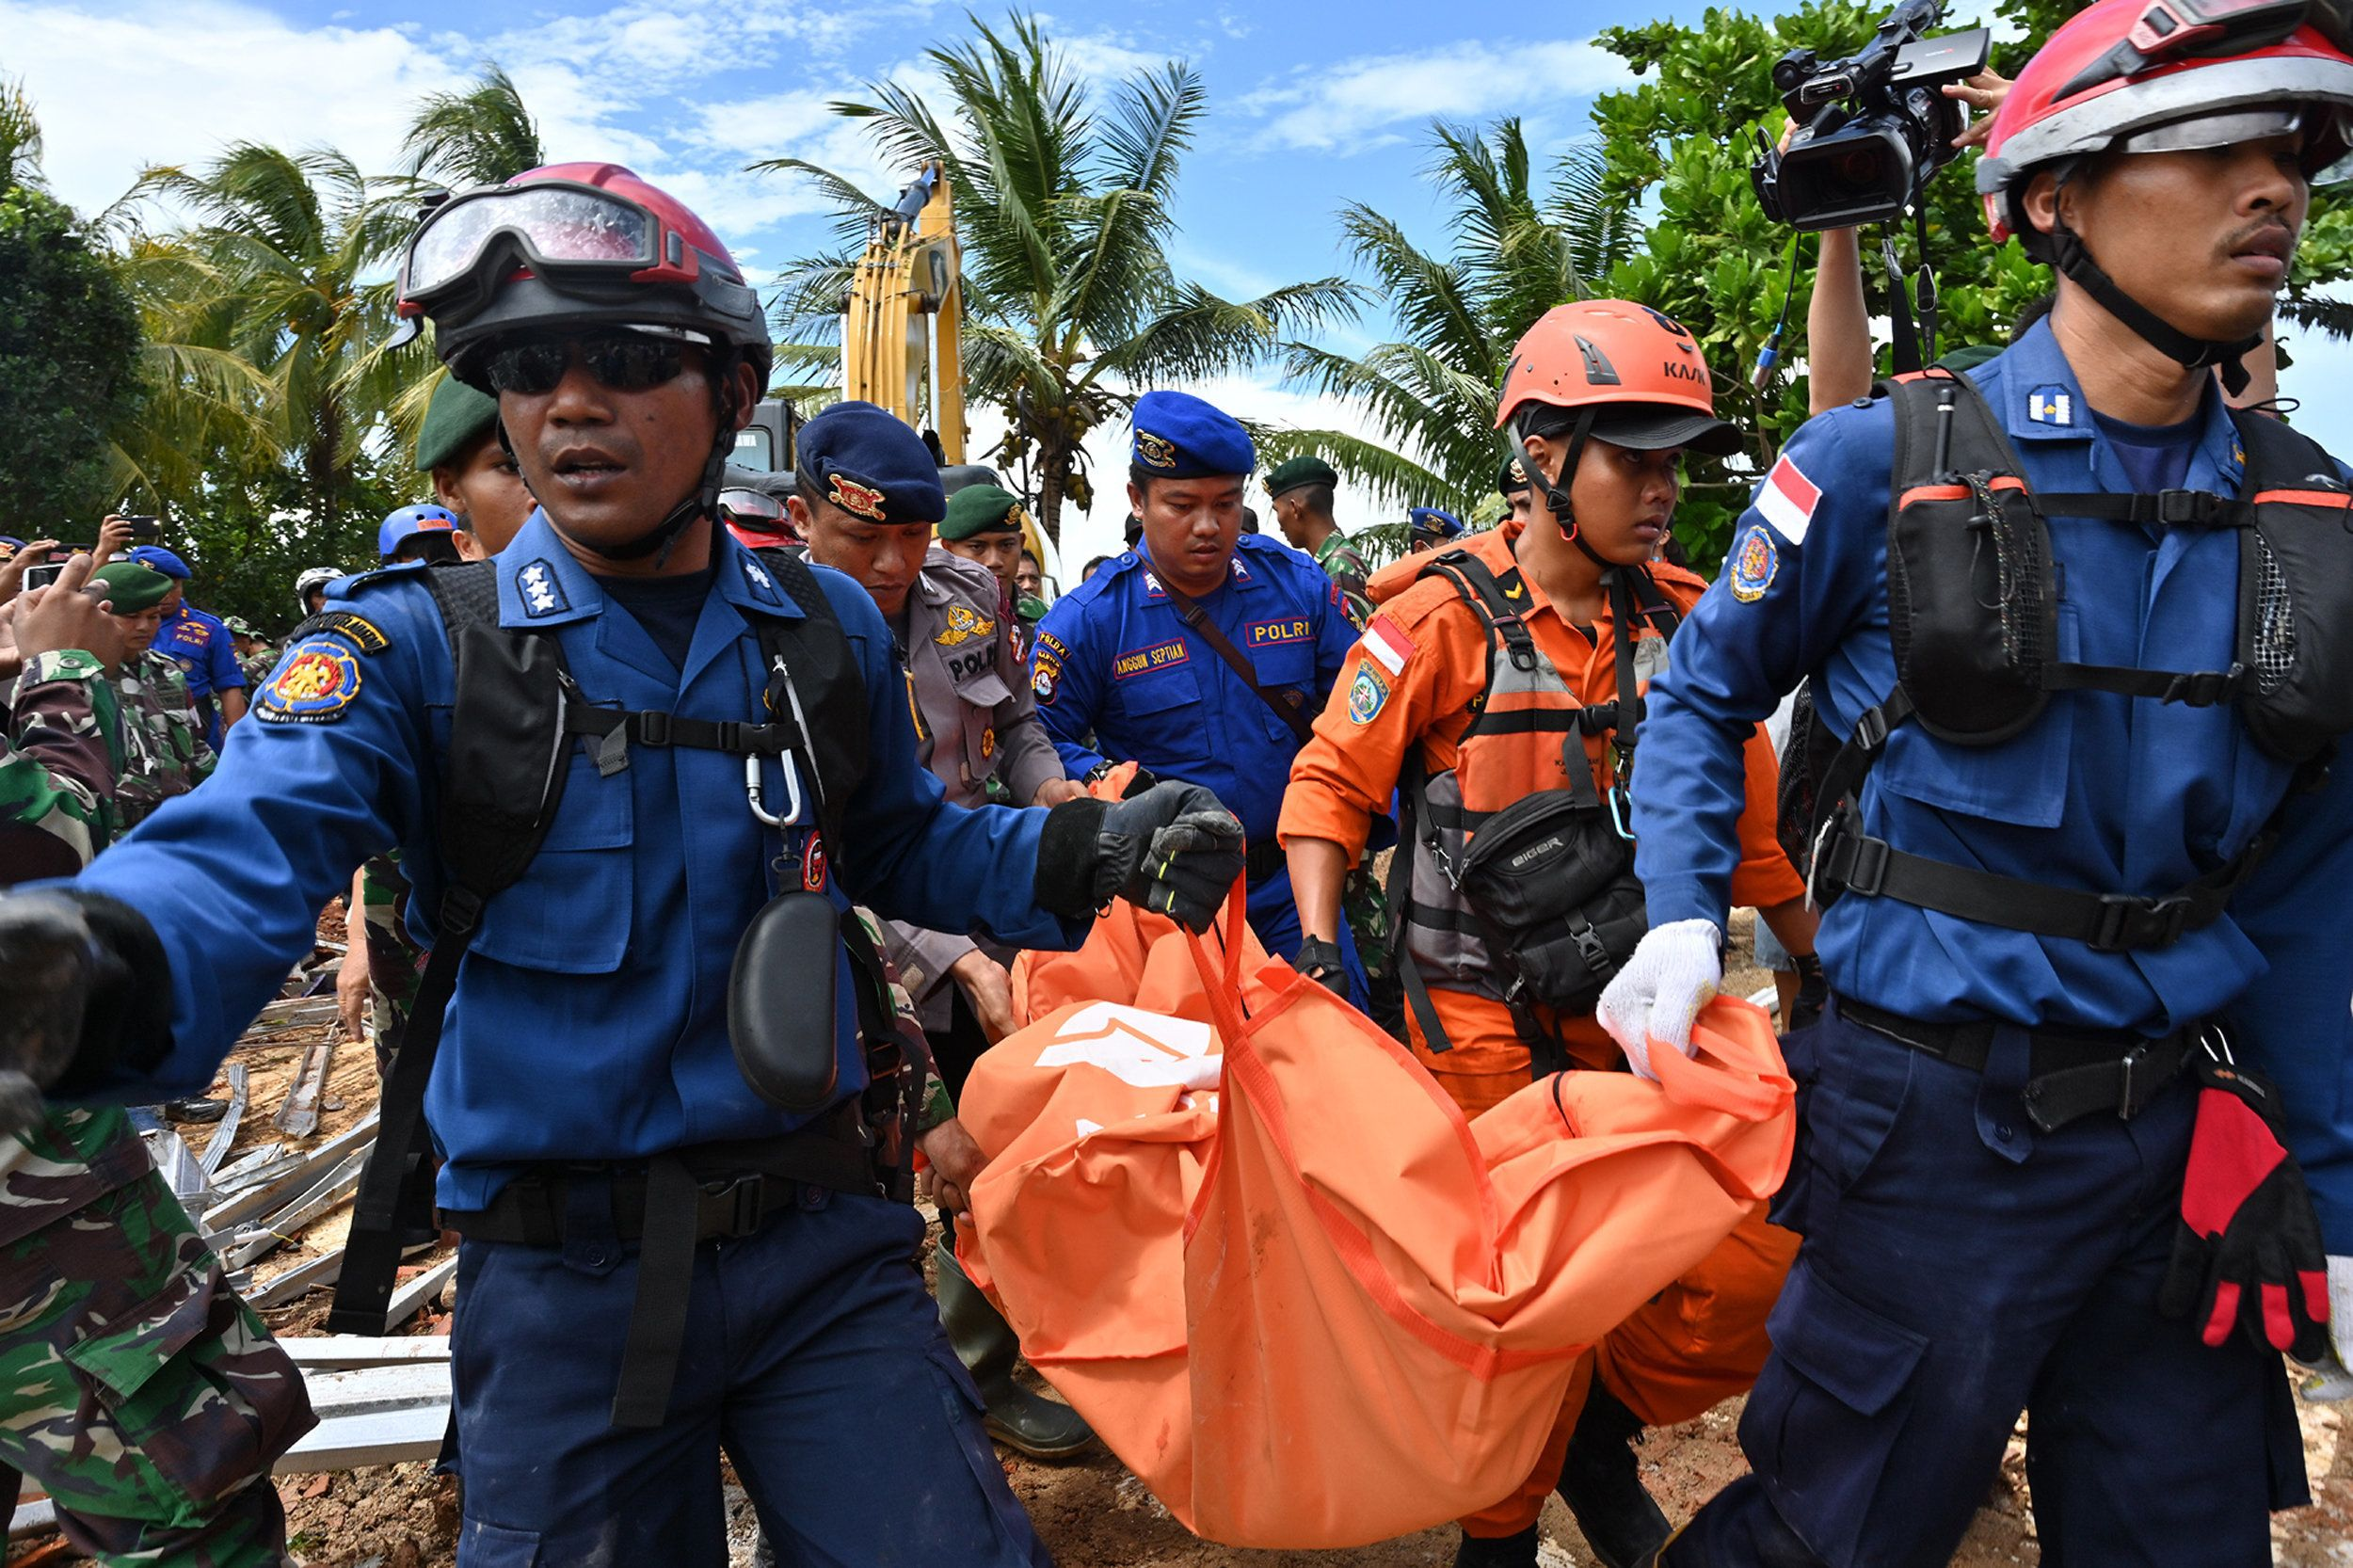 Members of an Indonesian search and rescue team carry a body bag taken from the Villa Stephanie accommodation in Carita in Banten province on December 24, 2018, two days after a tsunami - caused by activity at a volcano known as the 'child' of Krakatoa - hit the west coast of Indonesia's Java island. - The death toll from the volcano-triggered tsunami in Indonesia has risen to 281, with more than 1,000 people injured, the national disaster agency said on December 24, as the desperate search for survivors ramped up. (Photo by ADEK BERRY / AFP)        (Photo credit should read ADEK BERRY/AFP/Getty Images)